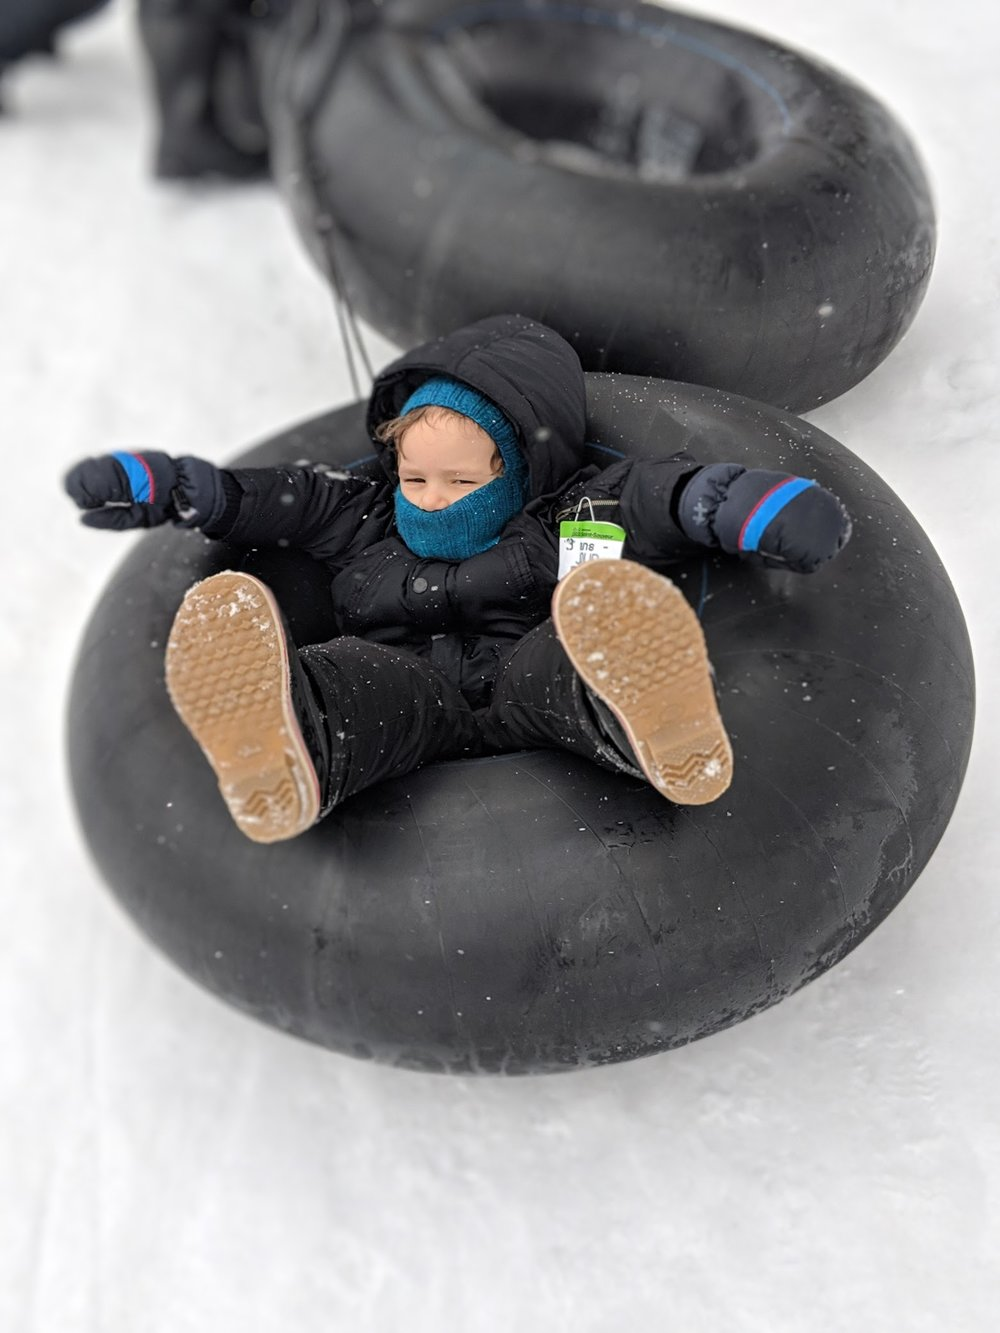 Last week we brought the boys tubing and it was amazing! There was a chairlift and everything. Big time fun for small kids and full grown adults as well.